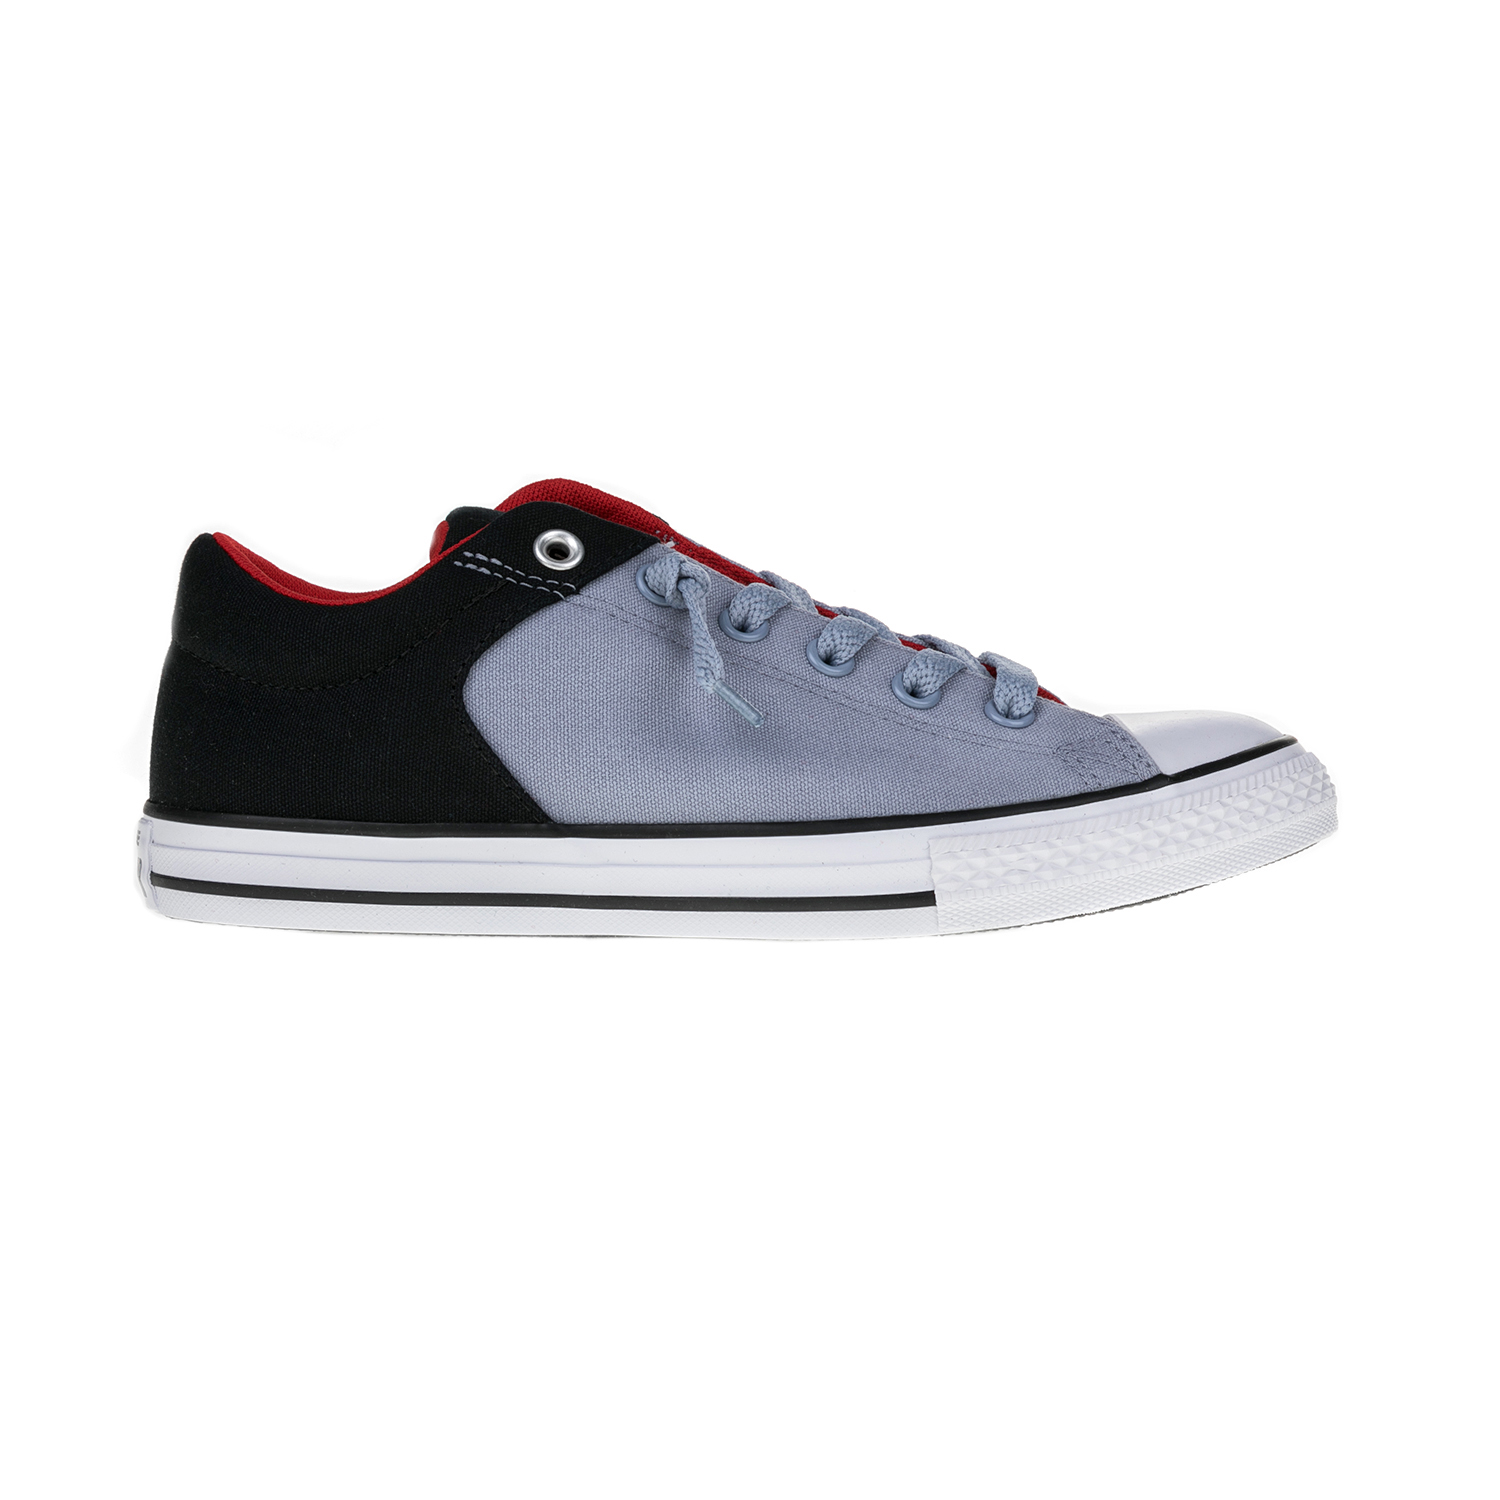 -58% Factory Outlet CONVERSE – Παιδικά παπούτσια Chuck Taylor All Star High  Str γκρι-μαύρα 0f9c06d7e3b